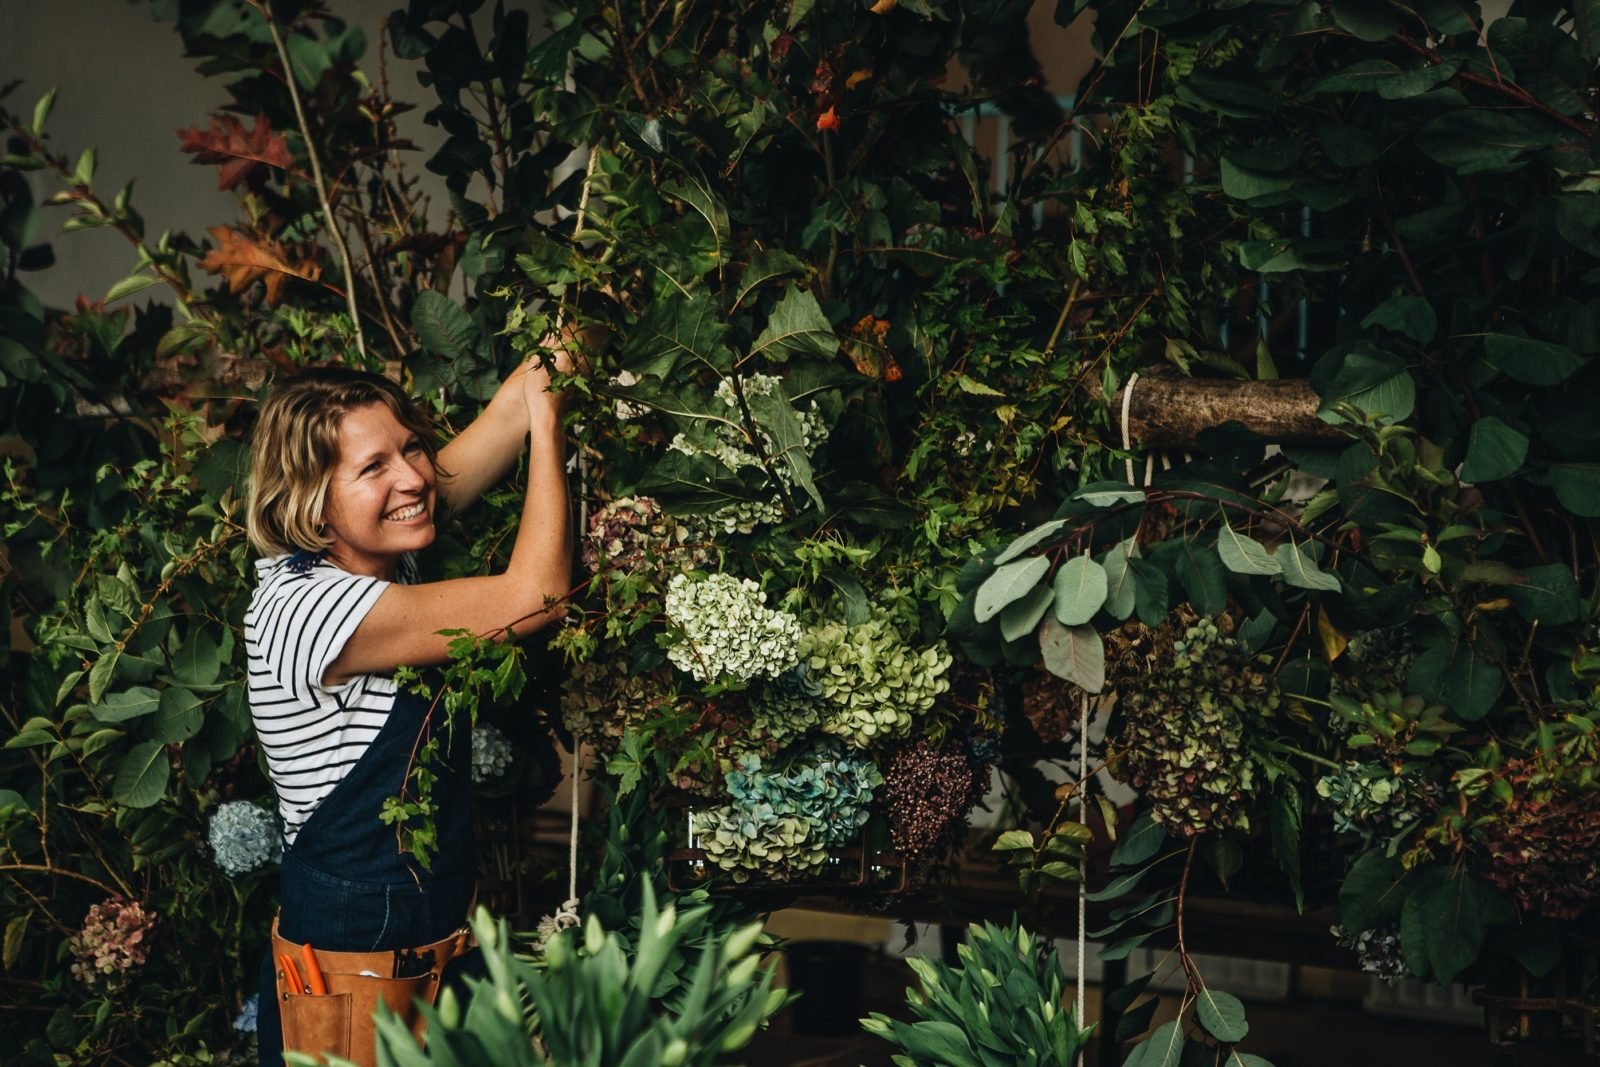 Female florist at work, smiling, surrounded by plants and flowers